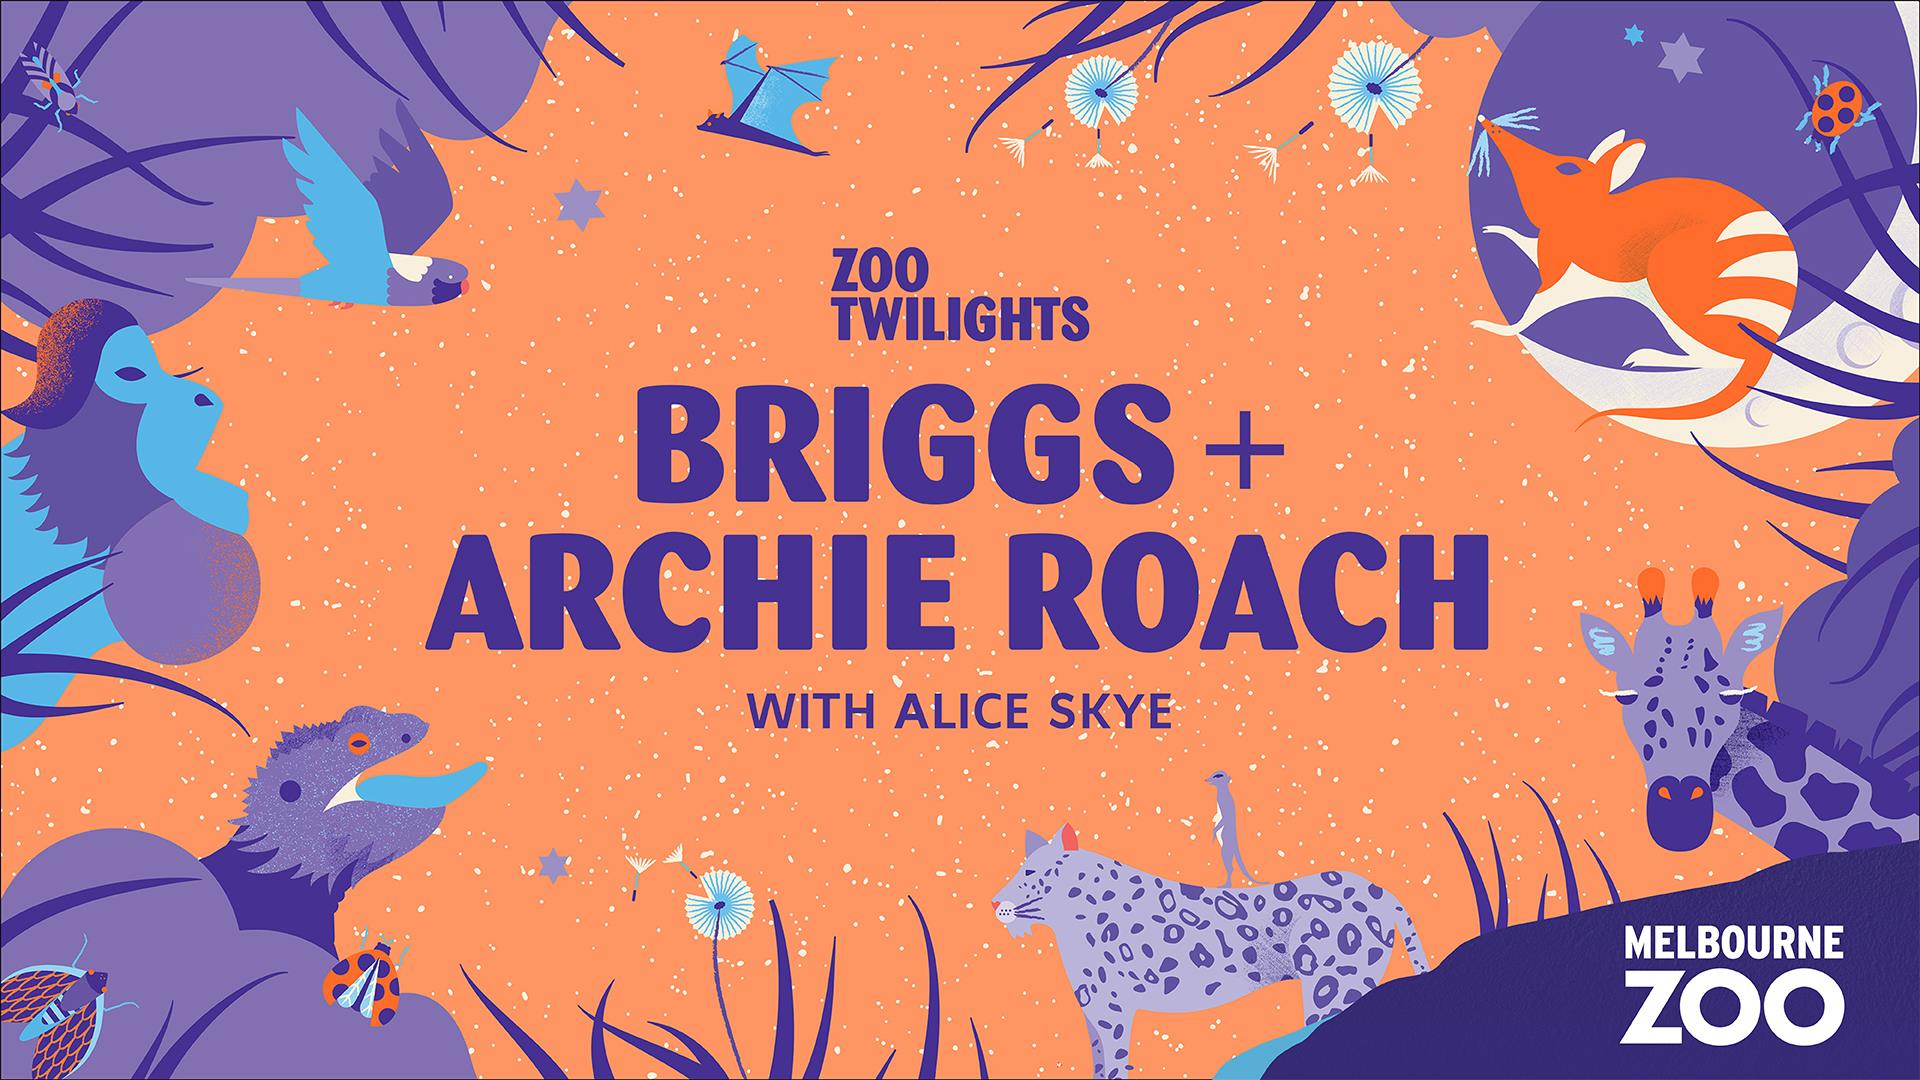 BRIGGS + ARCHIE ROACH + ALICE SKYE at Zoo Twilights